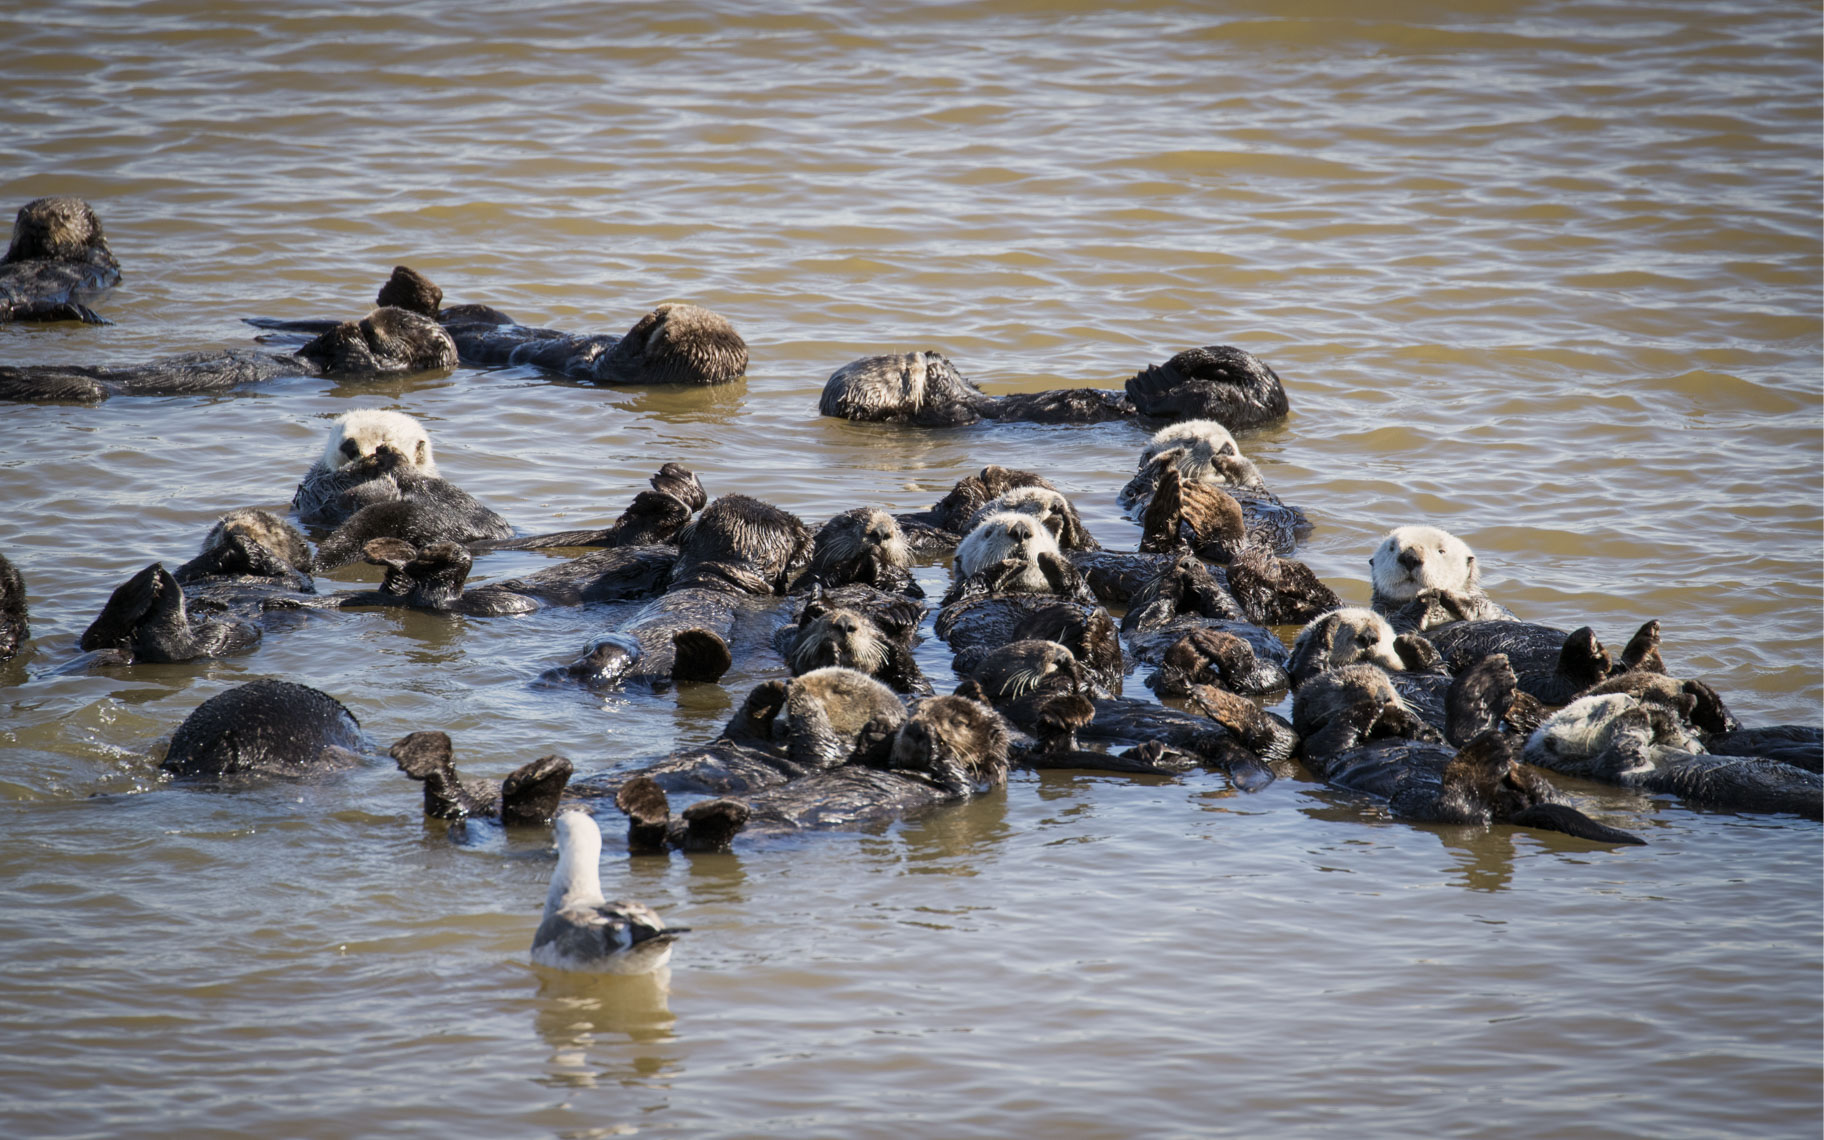 Otter aggregation